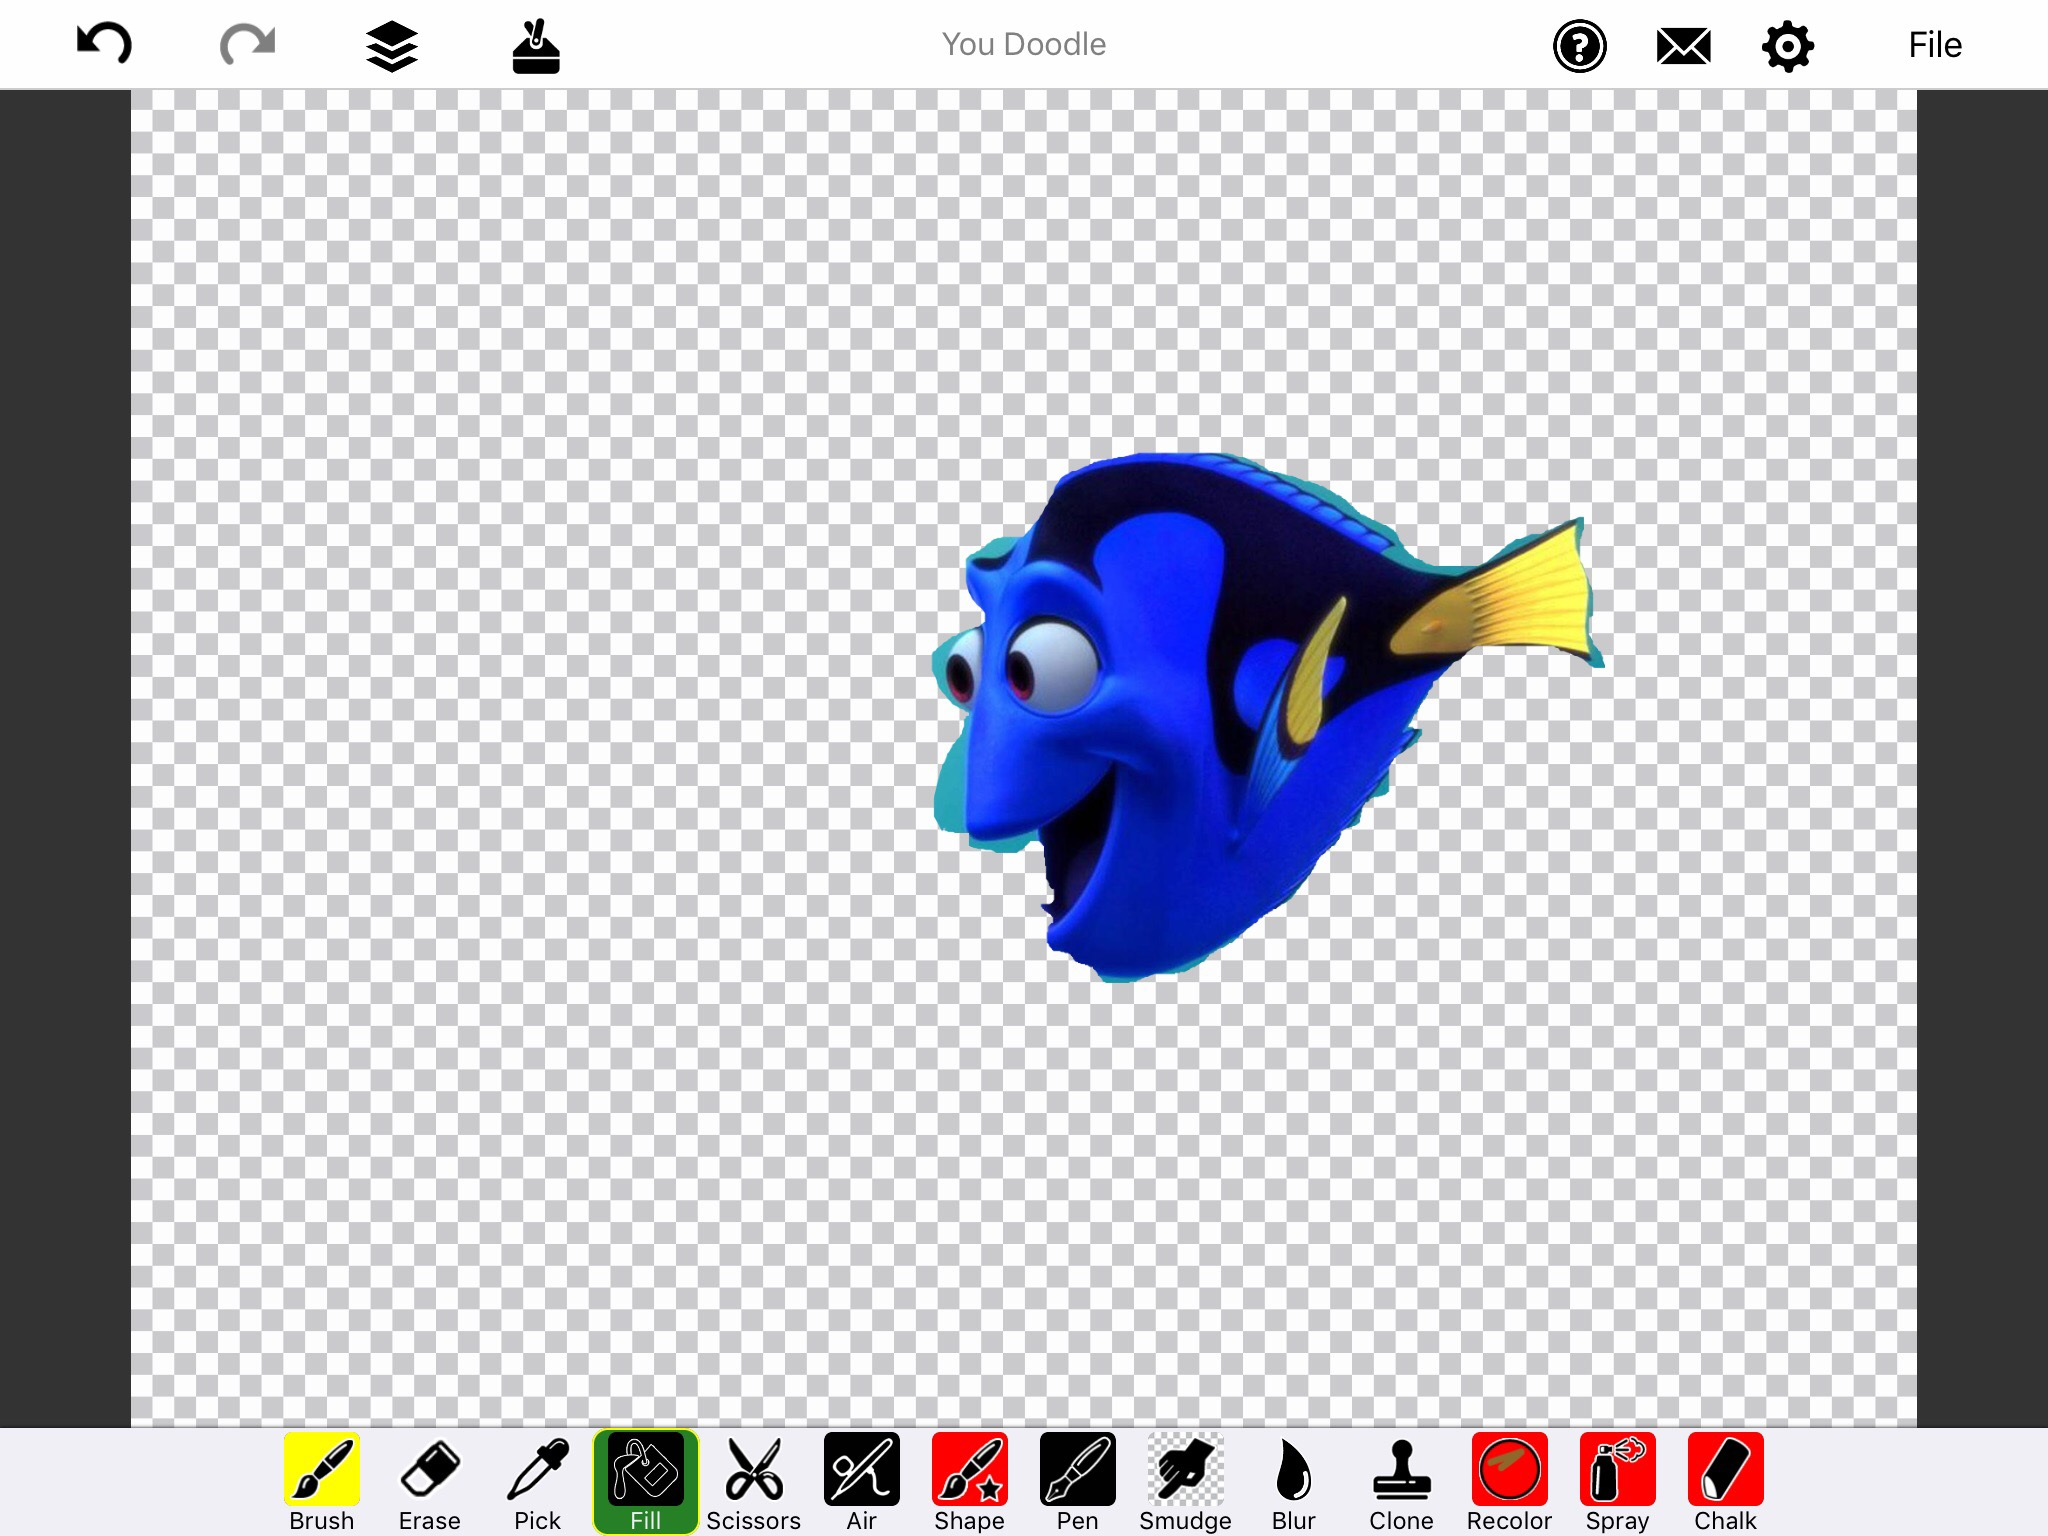 Screenshot of You Doodle app of Dory with blank background and tool bar at the bottom of the page.